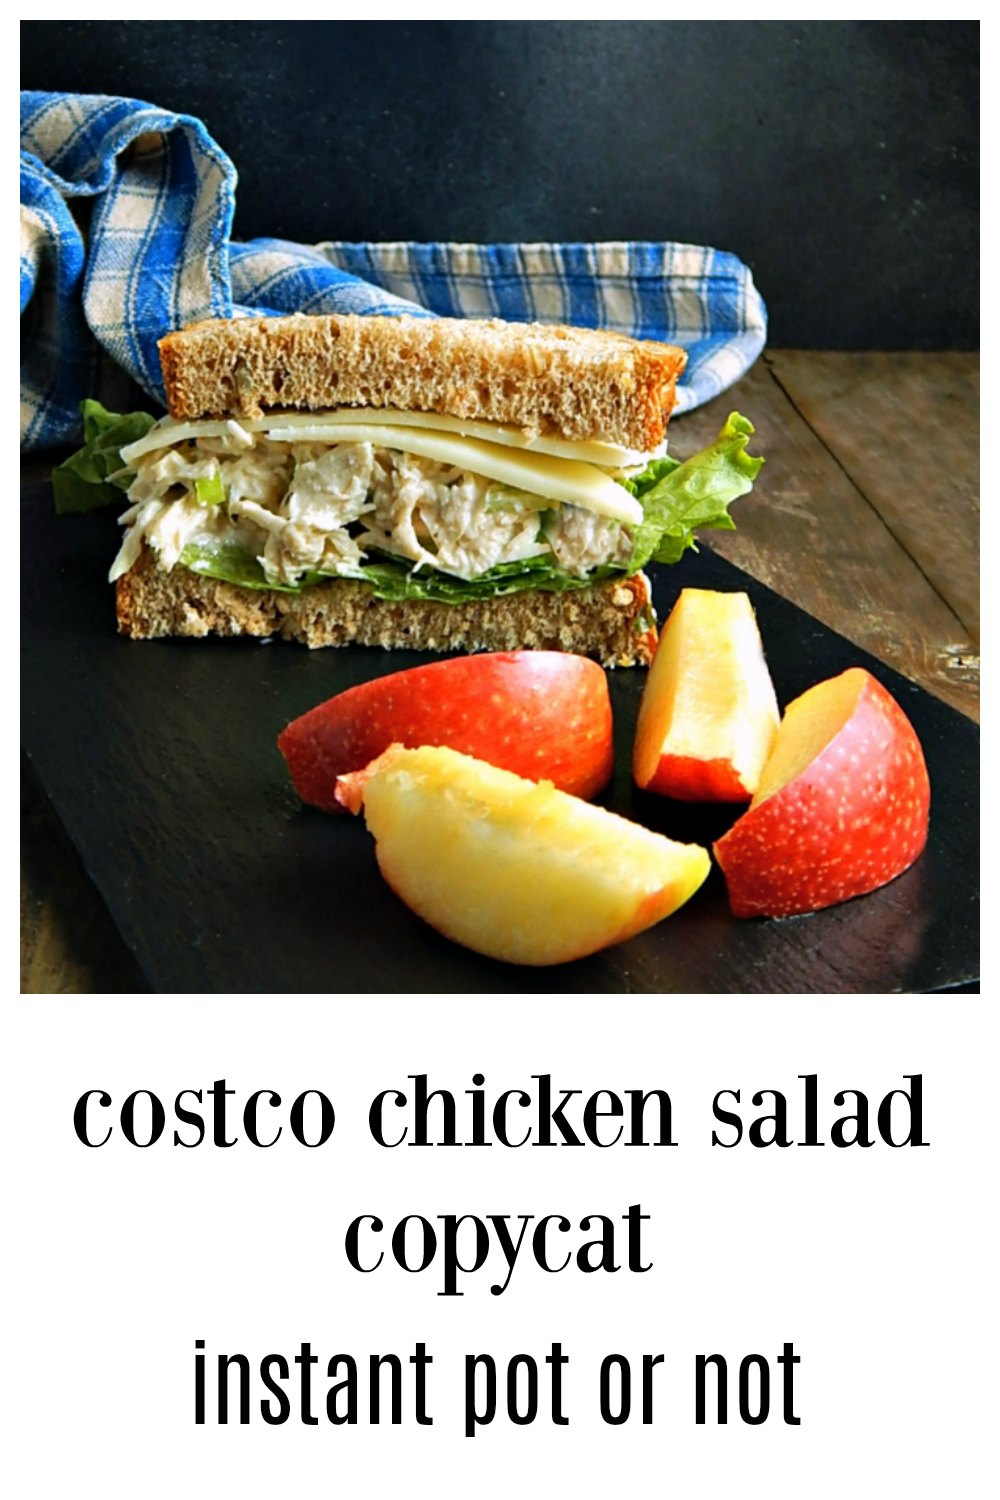 I fell in love with Costco's Chicken Salad - but not the ingredients. Check out my easy Copycat Costco Chicken Salad made in the Instant Pot or Not! This is a fantastic, Old Fashioned Chicken Salad - and it's easy! #CostcoChickenSalad #CostcoChickenSaladInstantPot #ChickenSalad